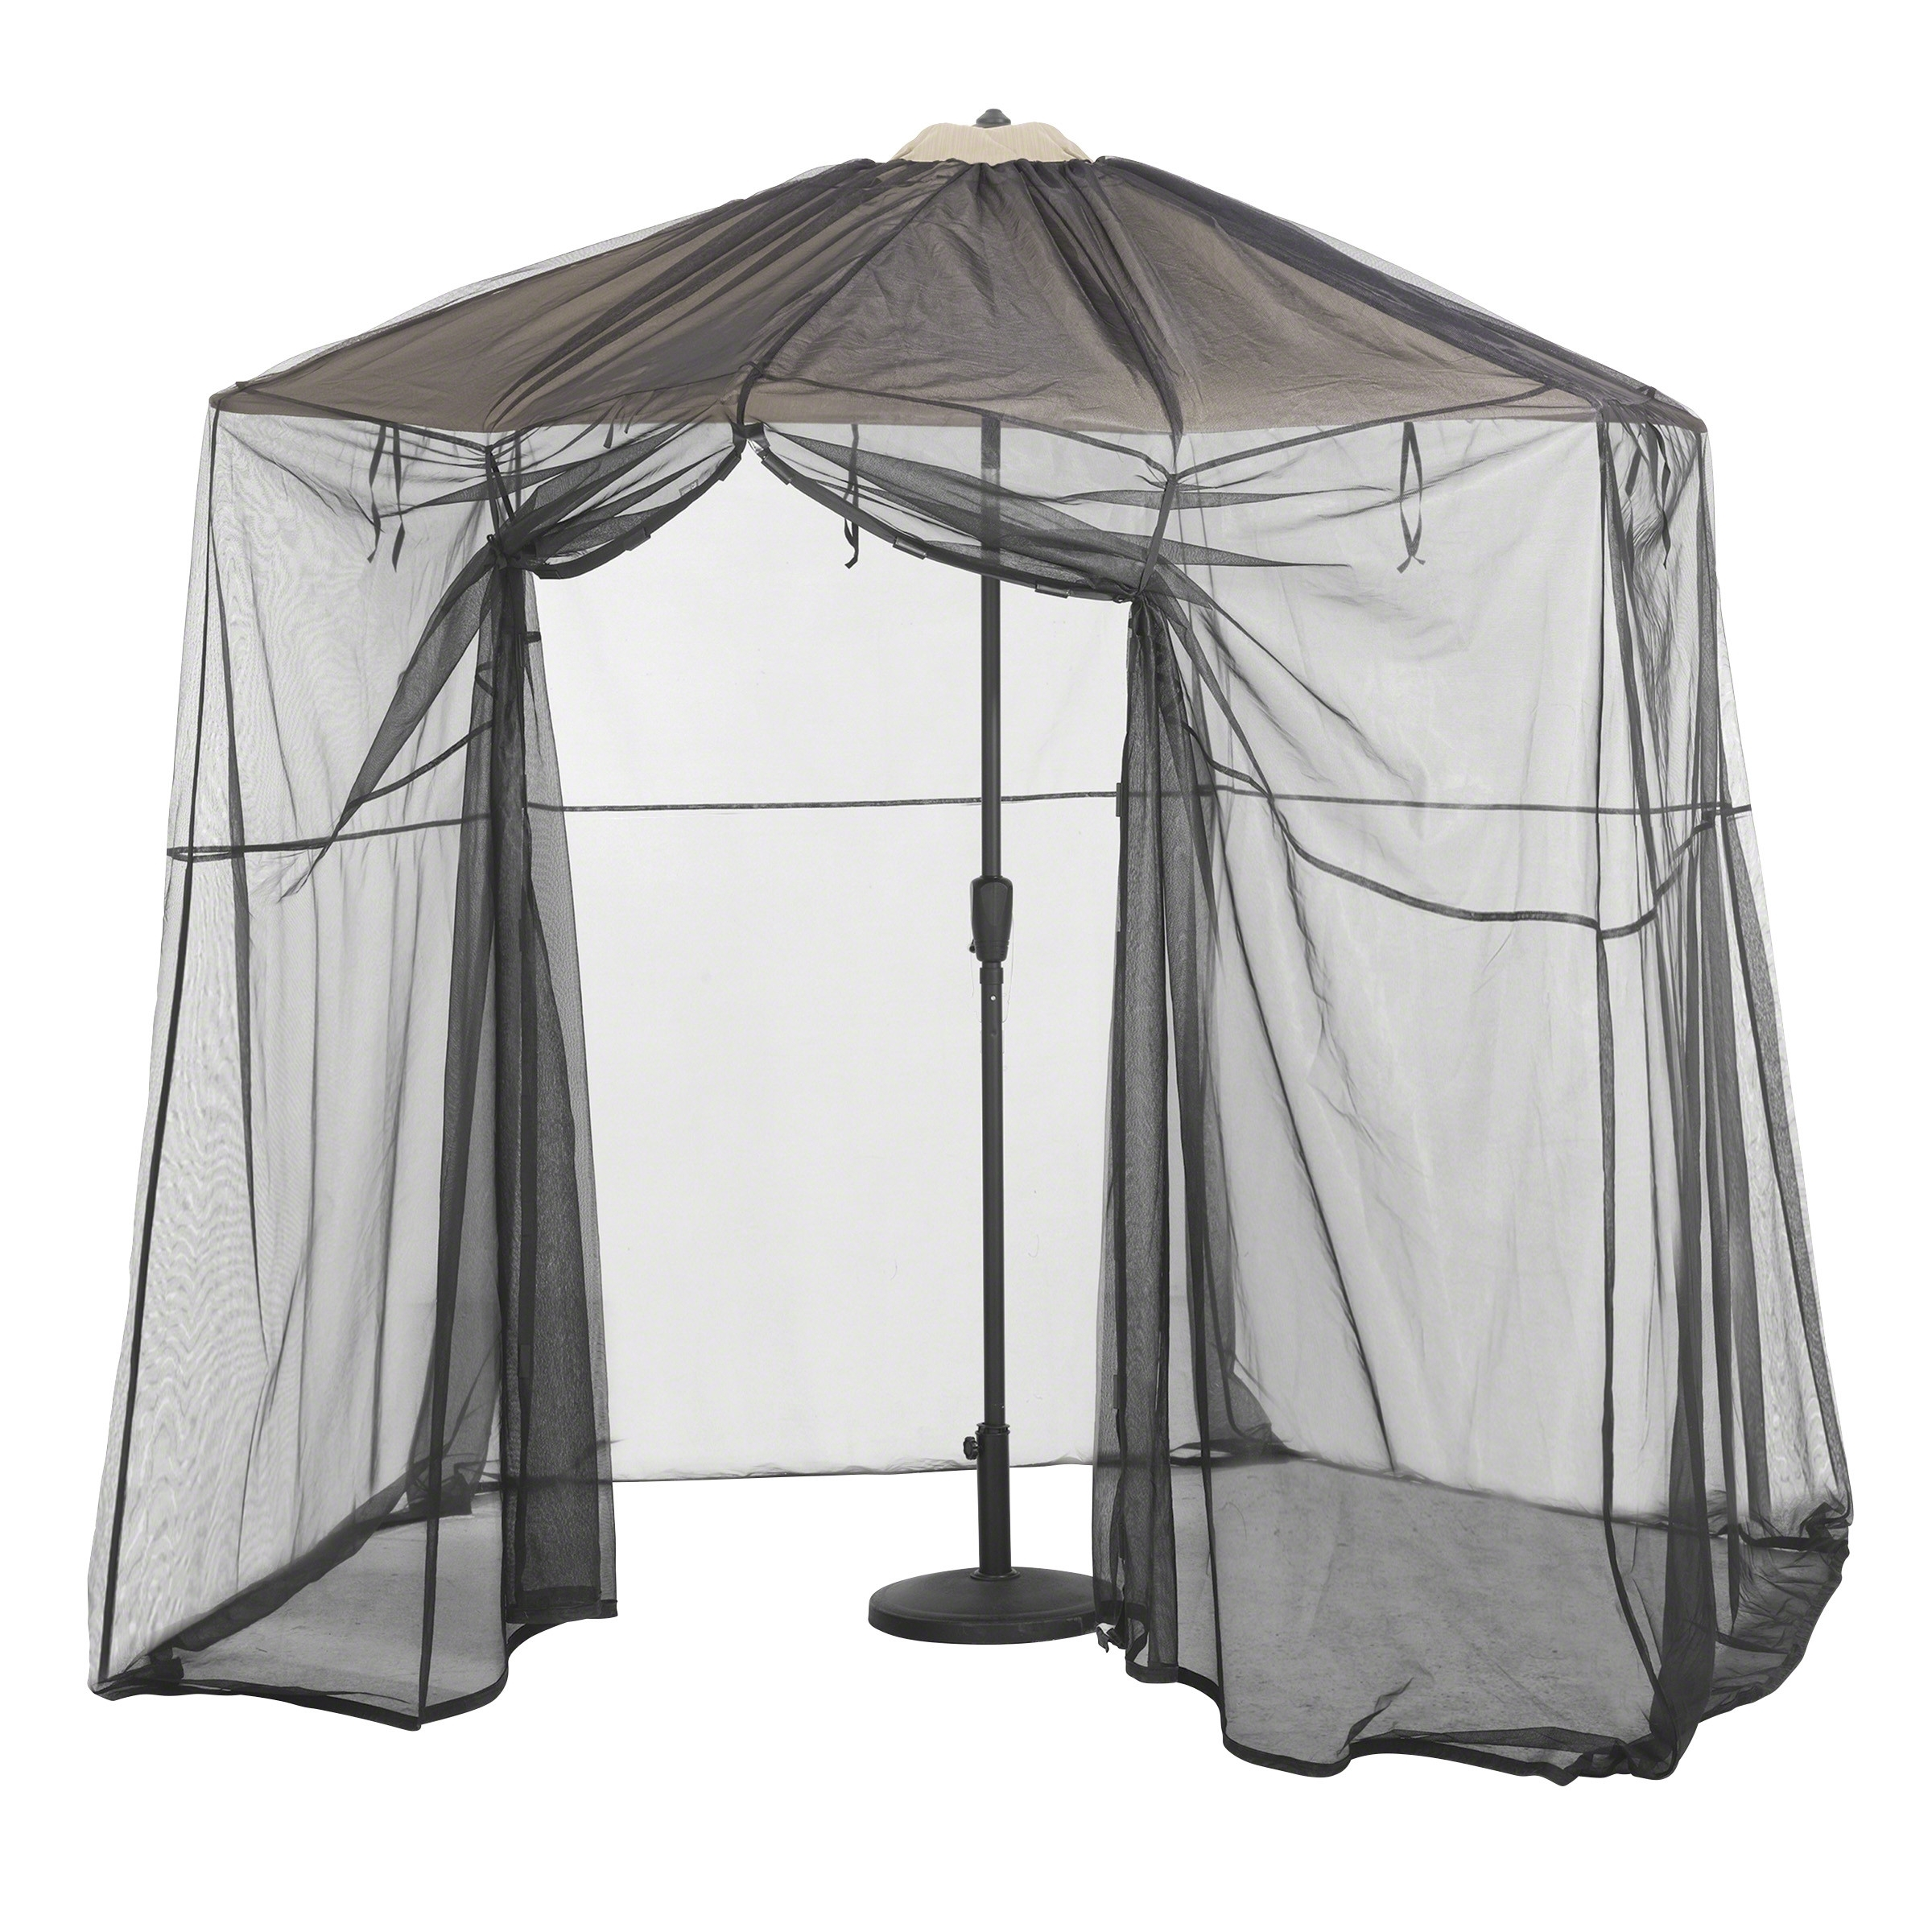 Newest Classic Accessories Patio Umbrella Mosquito Net Canpoy – Umbrella With Patio Umbrellas With Netting (Gallery 13 of 20)